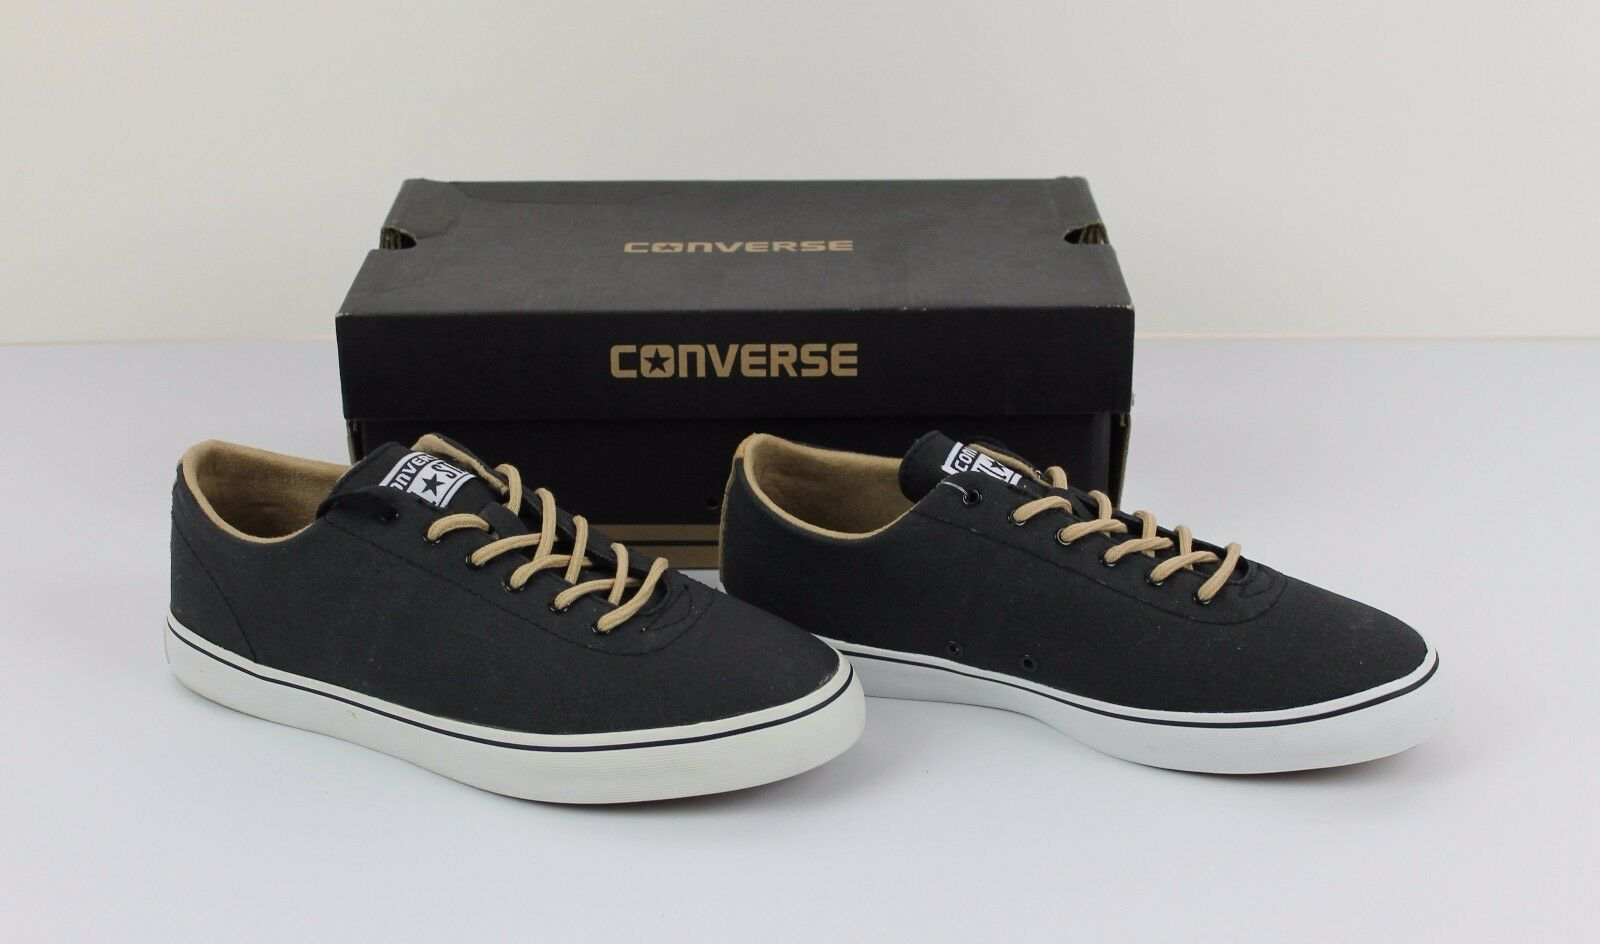 63ec1b6daa7fd5 New CONVERSE ELM LS OX Black Tan Stake Stake Stake Shoes Sneakers Men s 7  Women s 8.5 NIB f830de